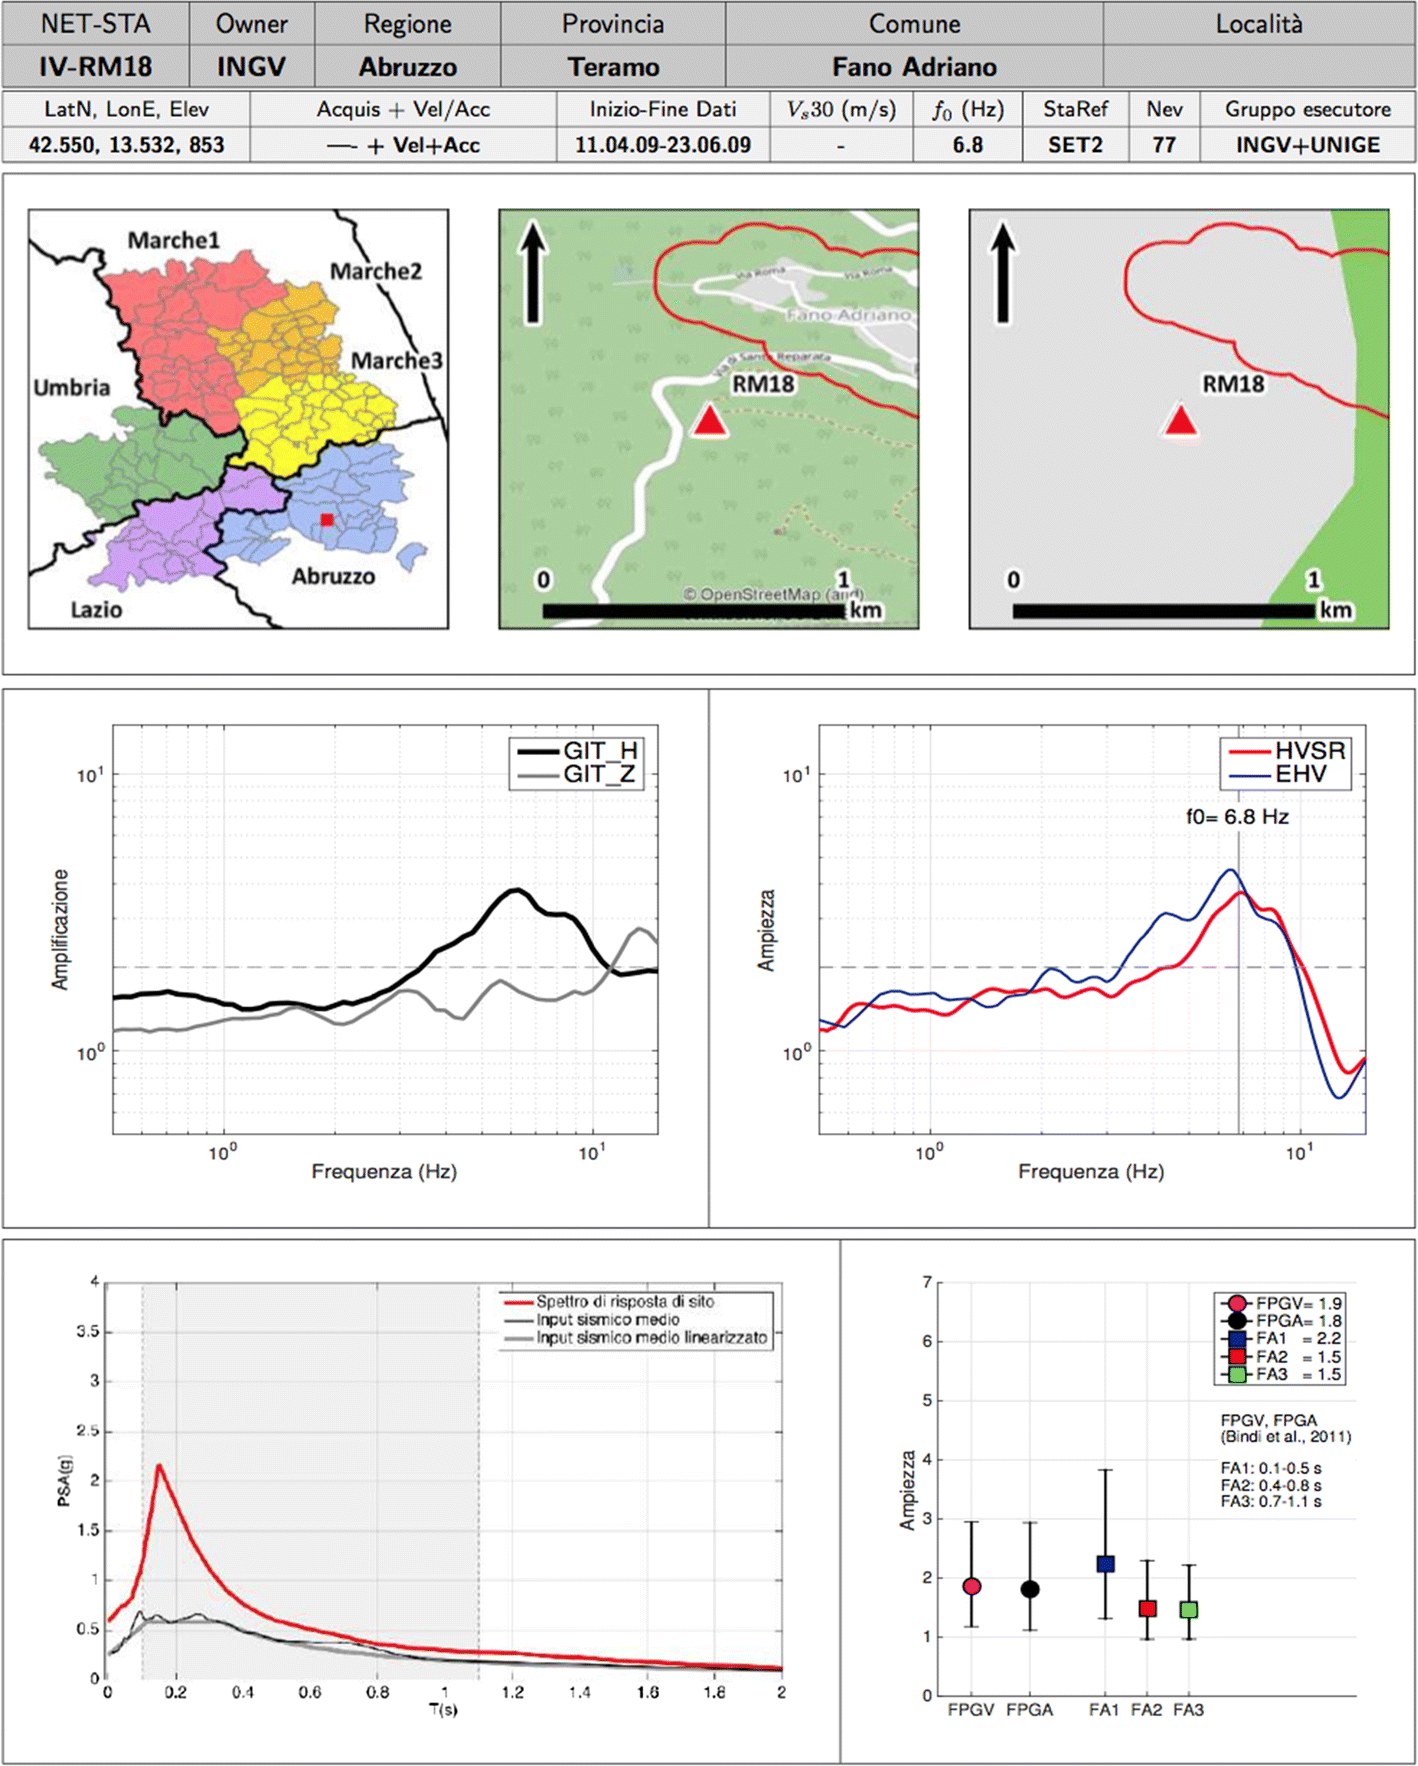 Seismological analyses of the seismic microzonation of 138